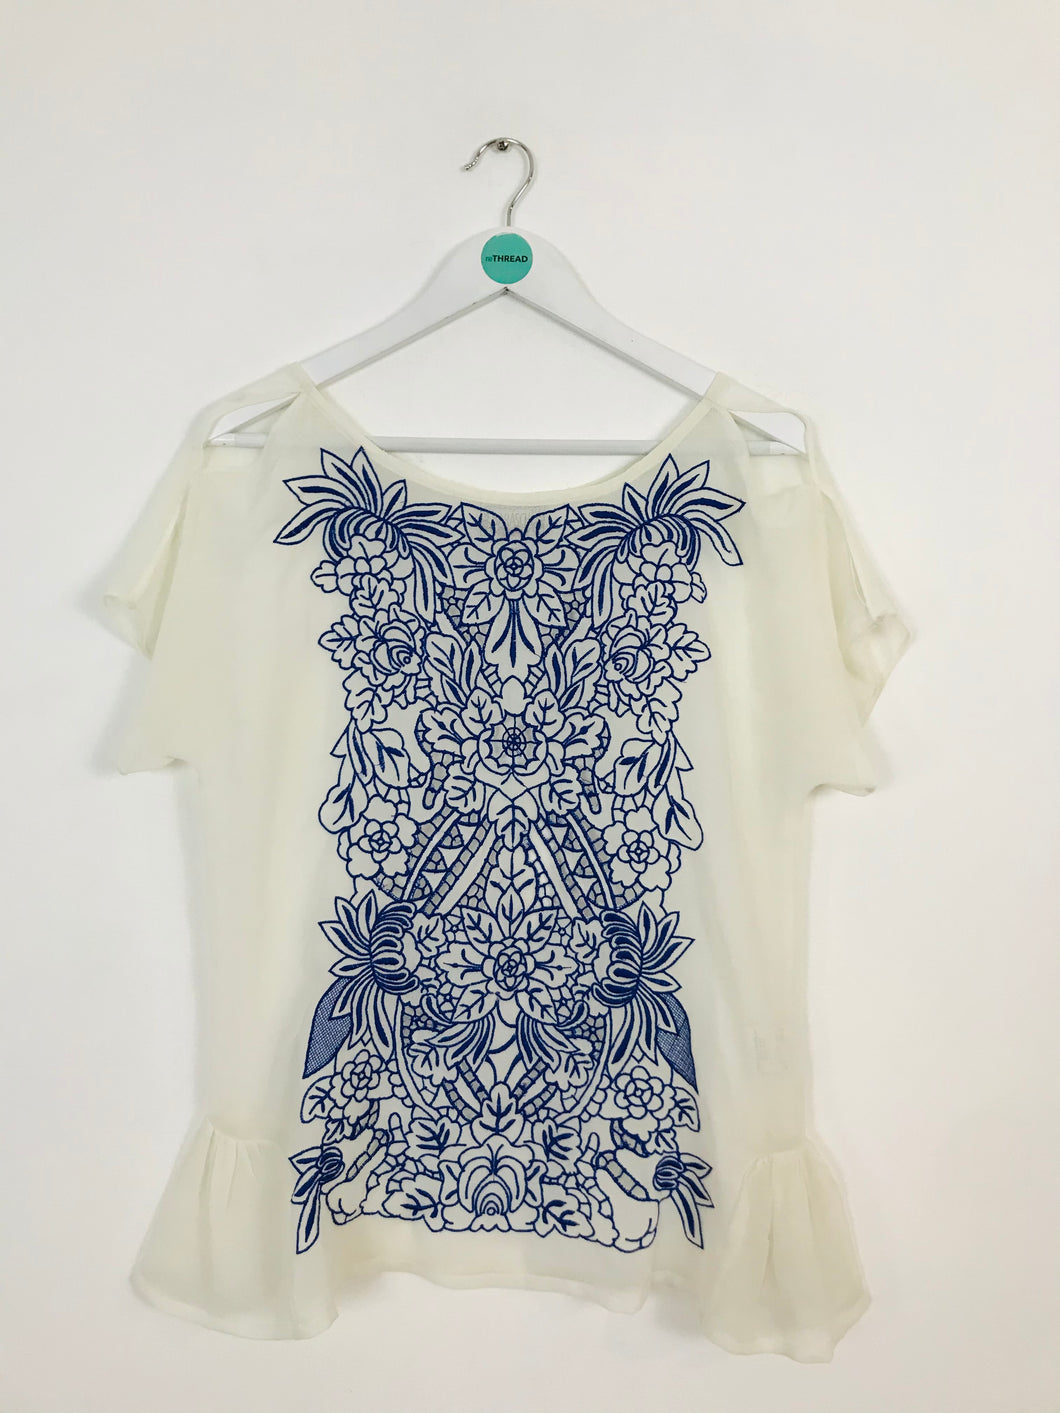 Baraschi Womens Embroidered Sheer Blouse | M | White Blue